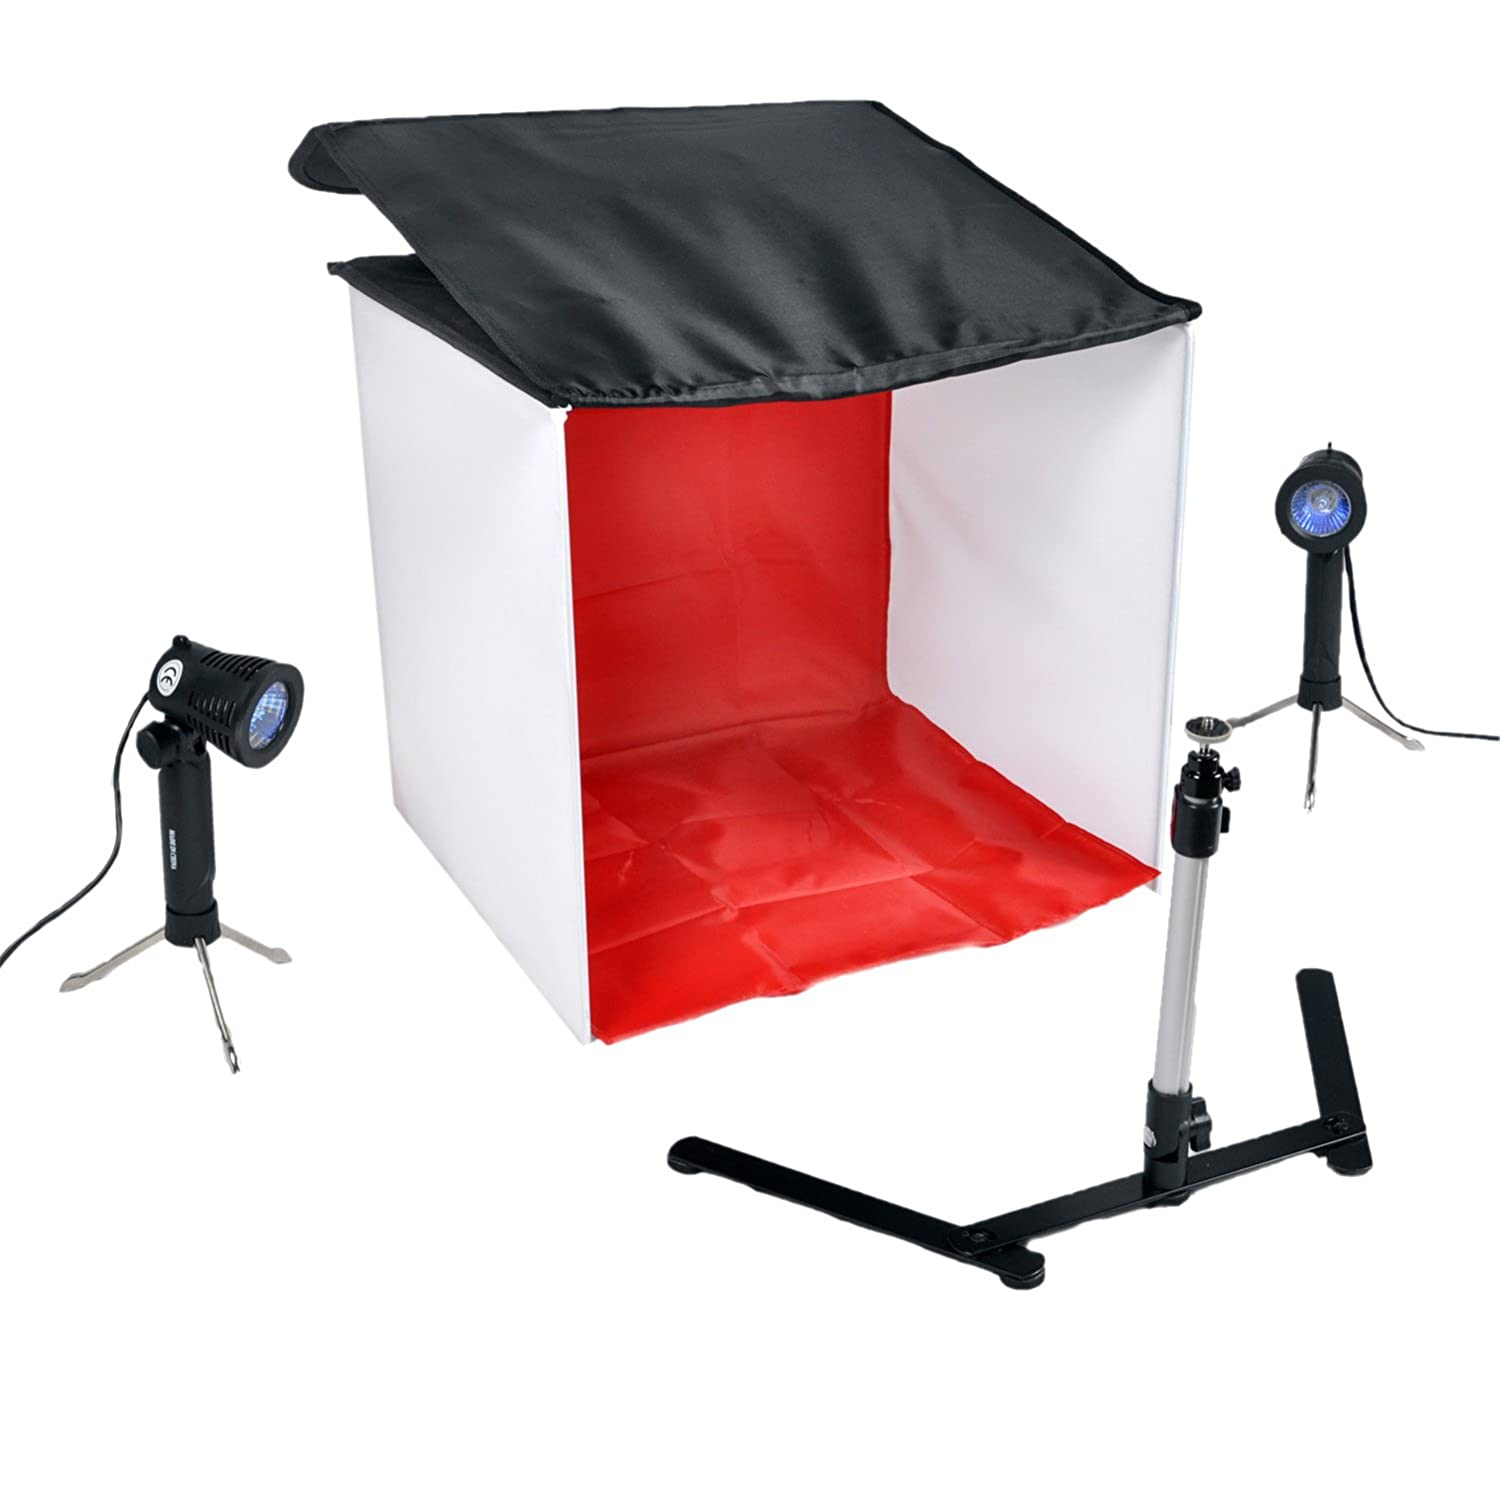 Amazon.com : CowboyStudio Table Top Photo Studio Light Tent Kit in a ...